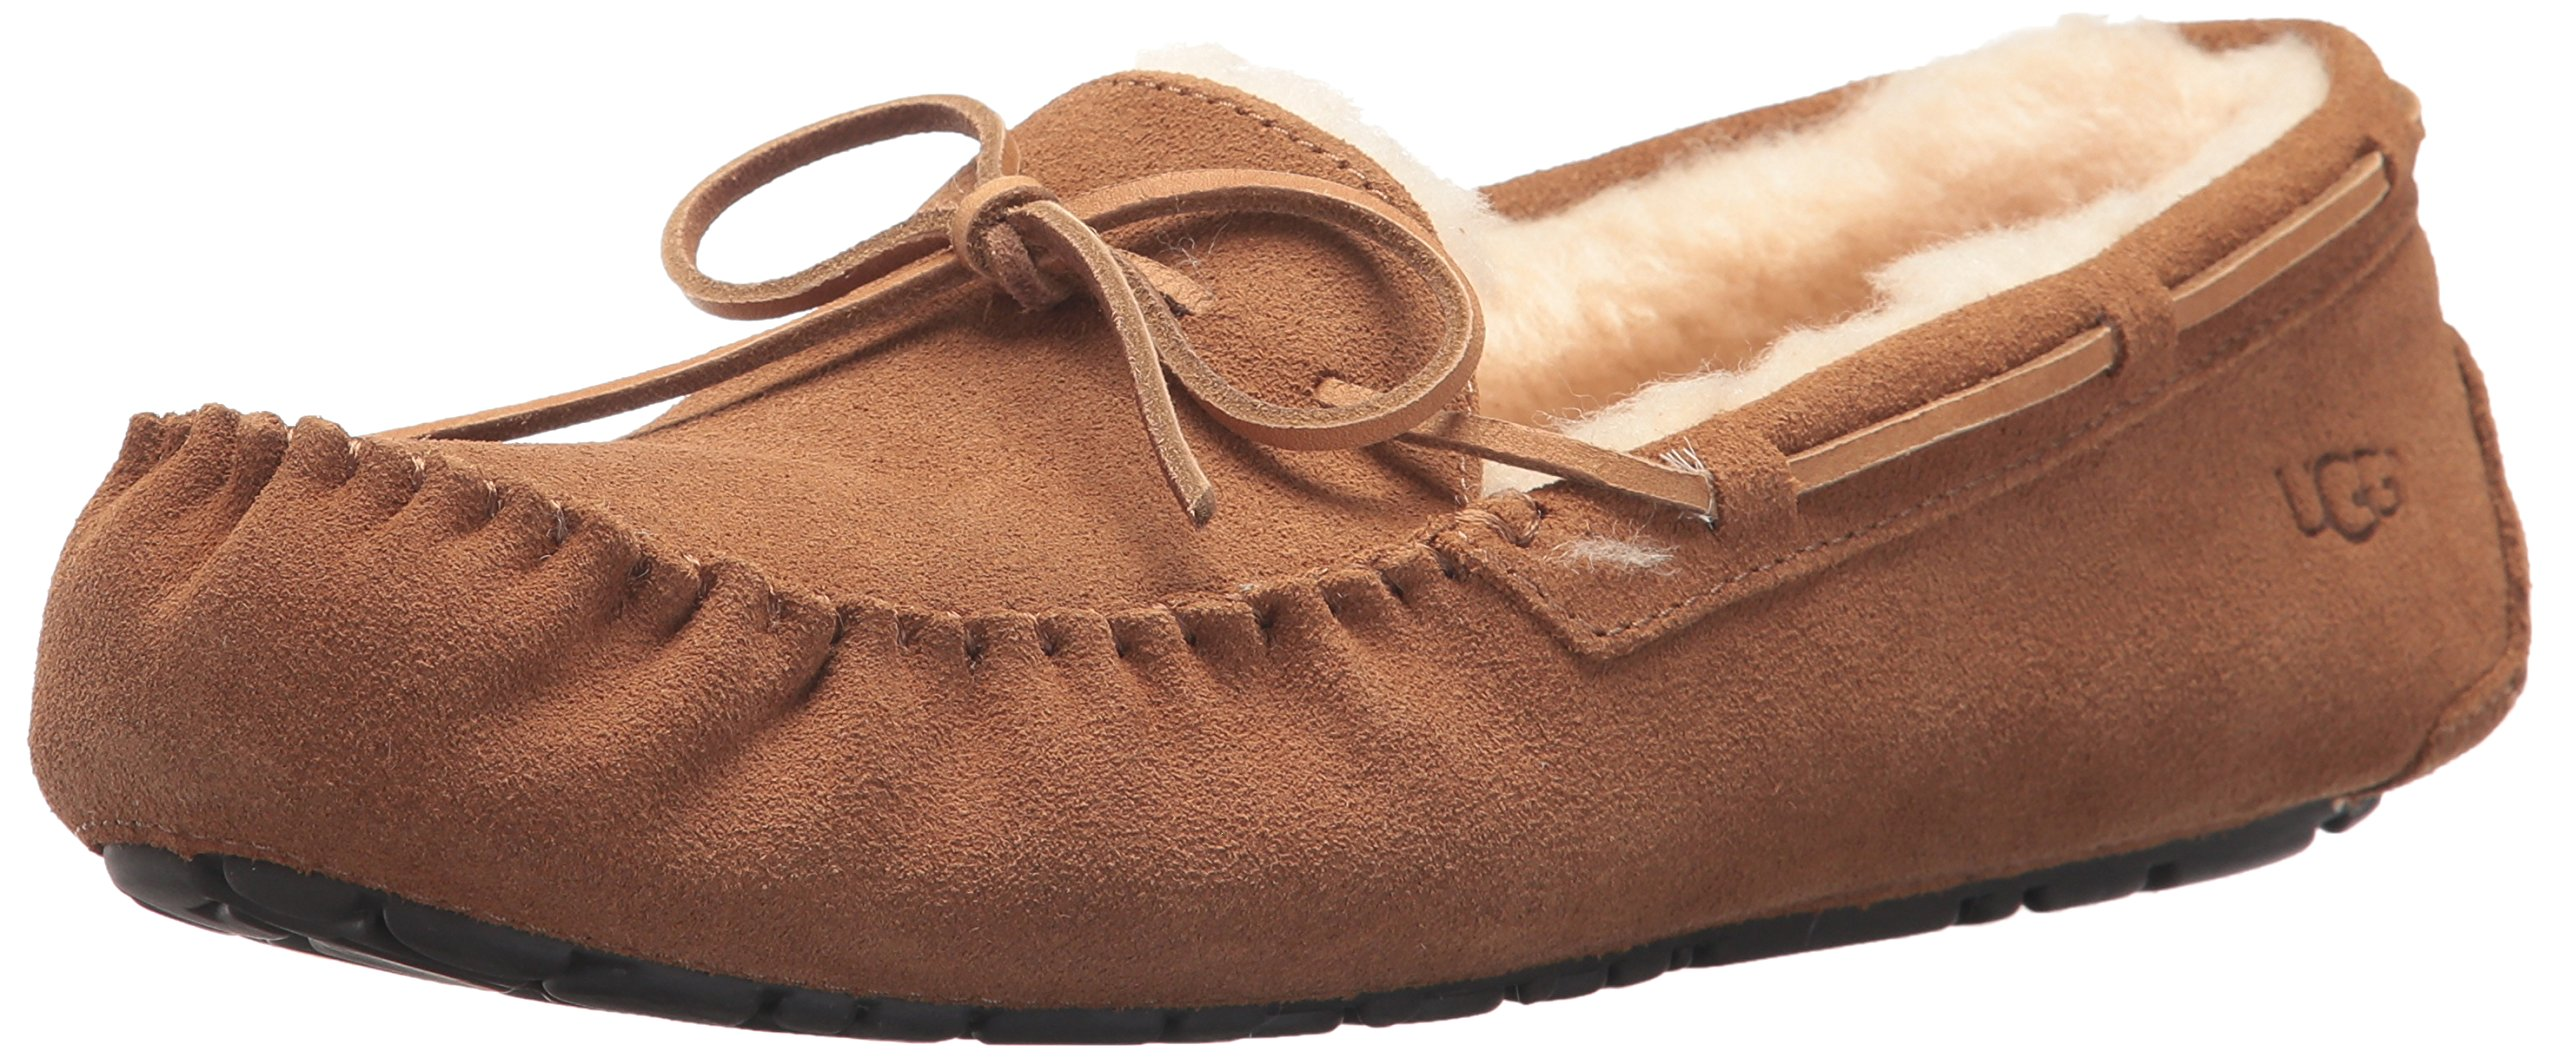 UGG Men's Olsen Moccasin, Chestnut, 9 M US